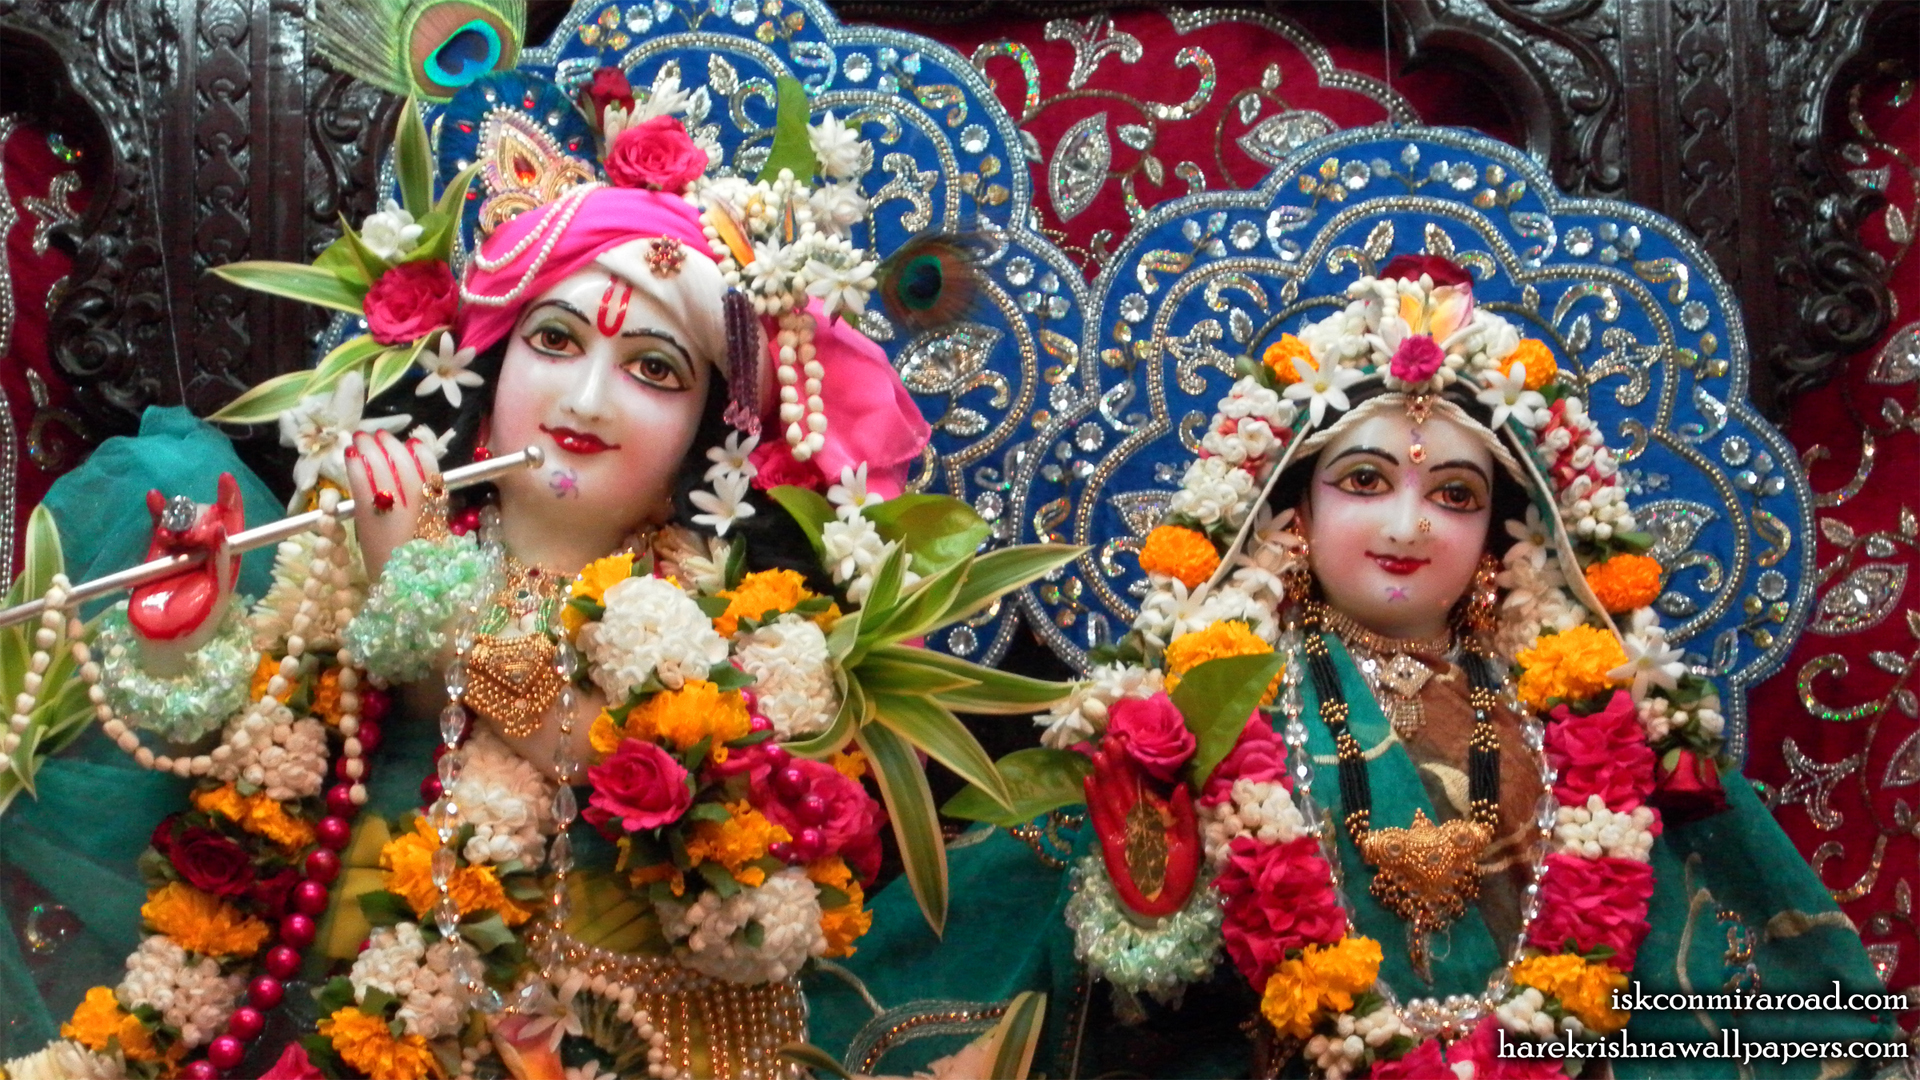 Sri Sri Radha Giridhari Close up Wallpaper (017) Size 1920x1080 Download